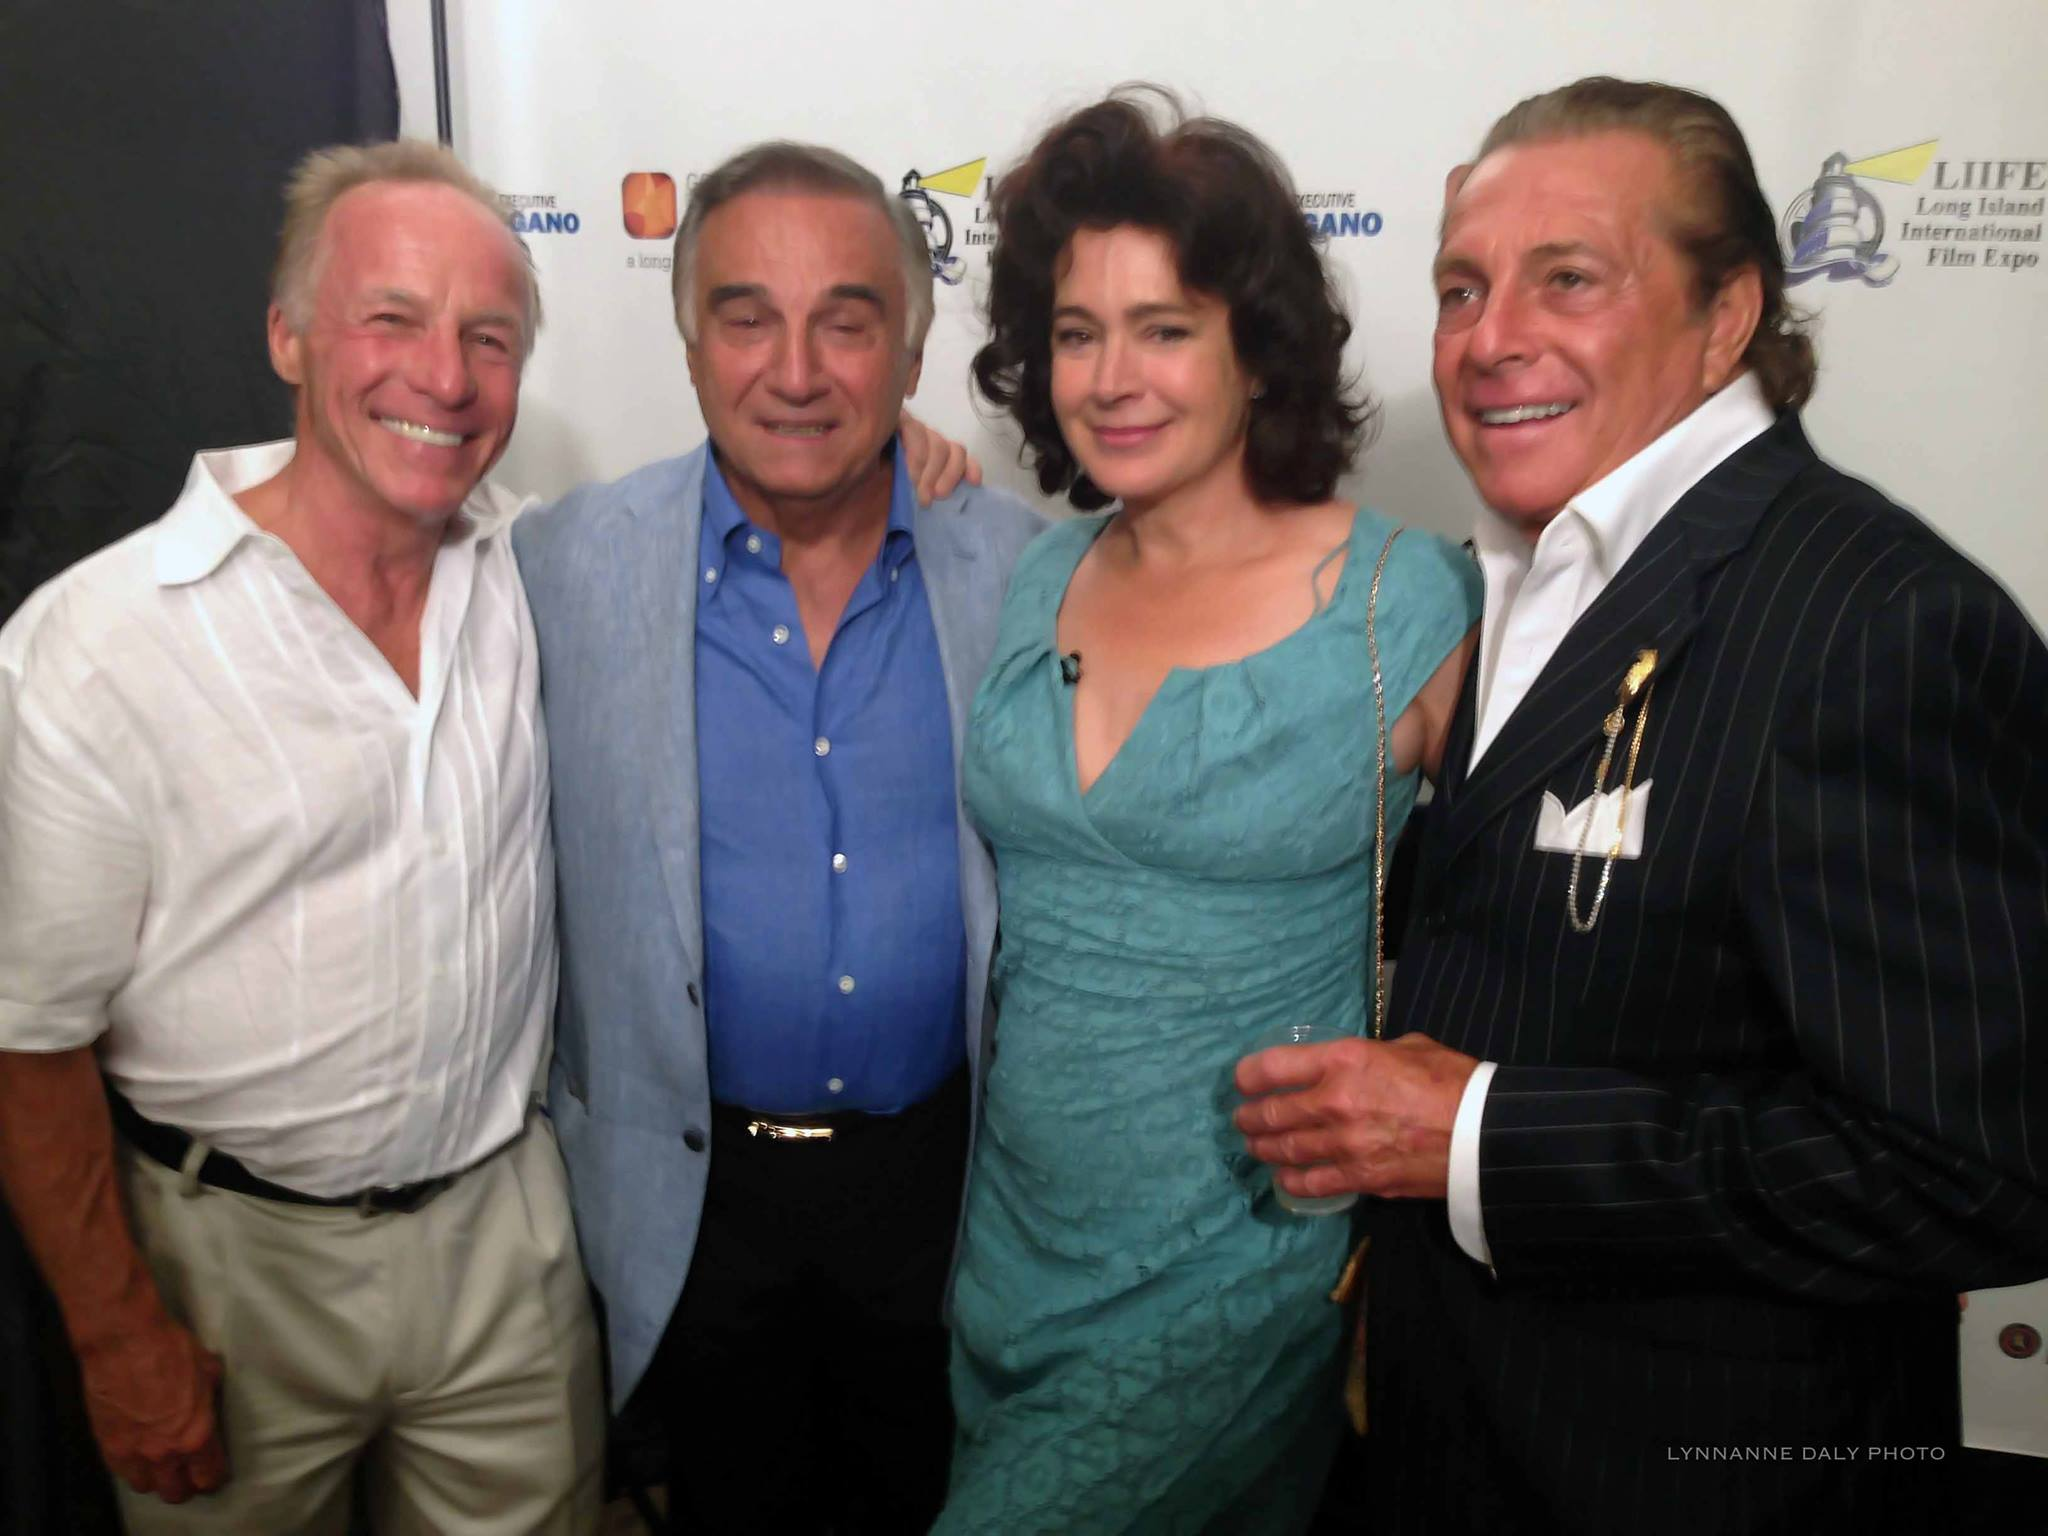 Jackie Martling, Tony LoBianco, Sean Young, and Gianni Russo